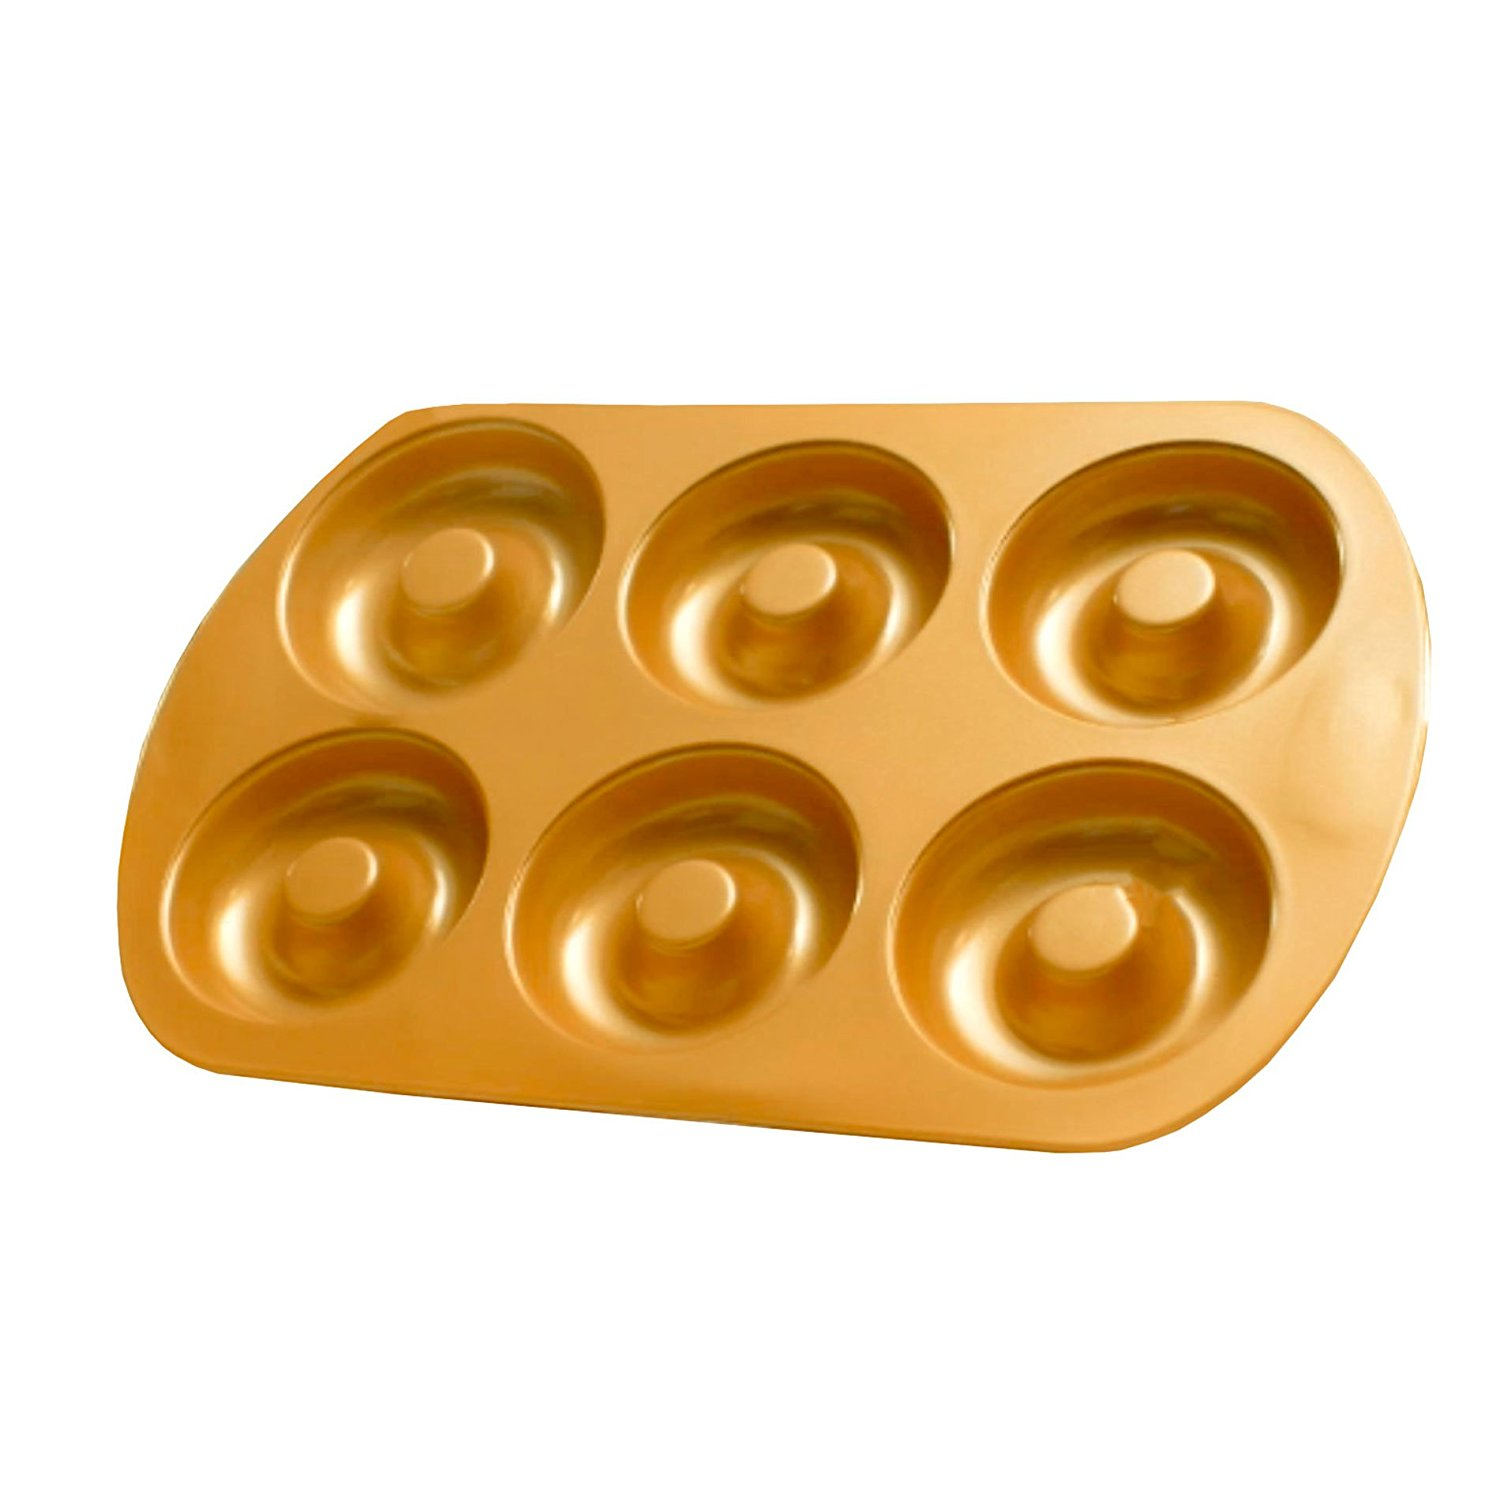 Red Copper Bakeware Set (Donut Pan) By Bulbhead